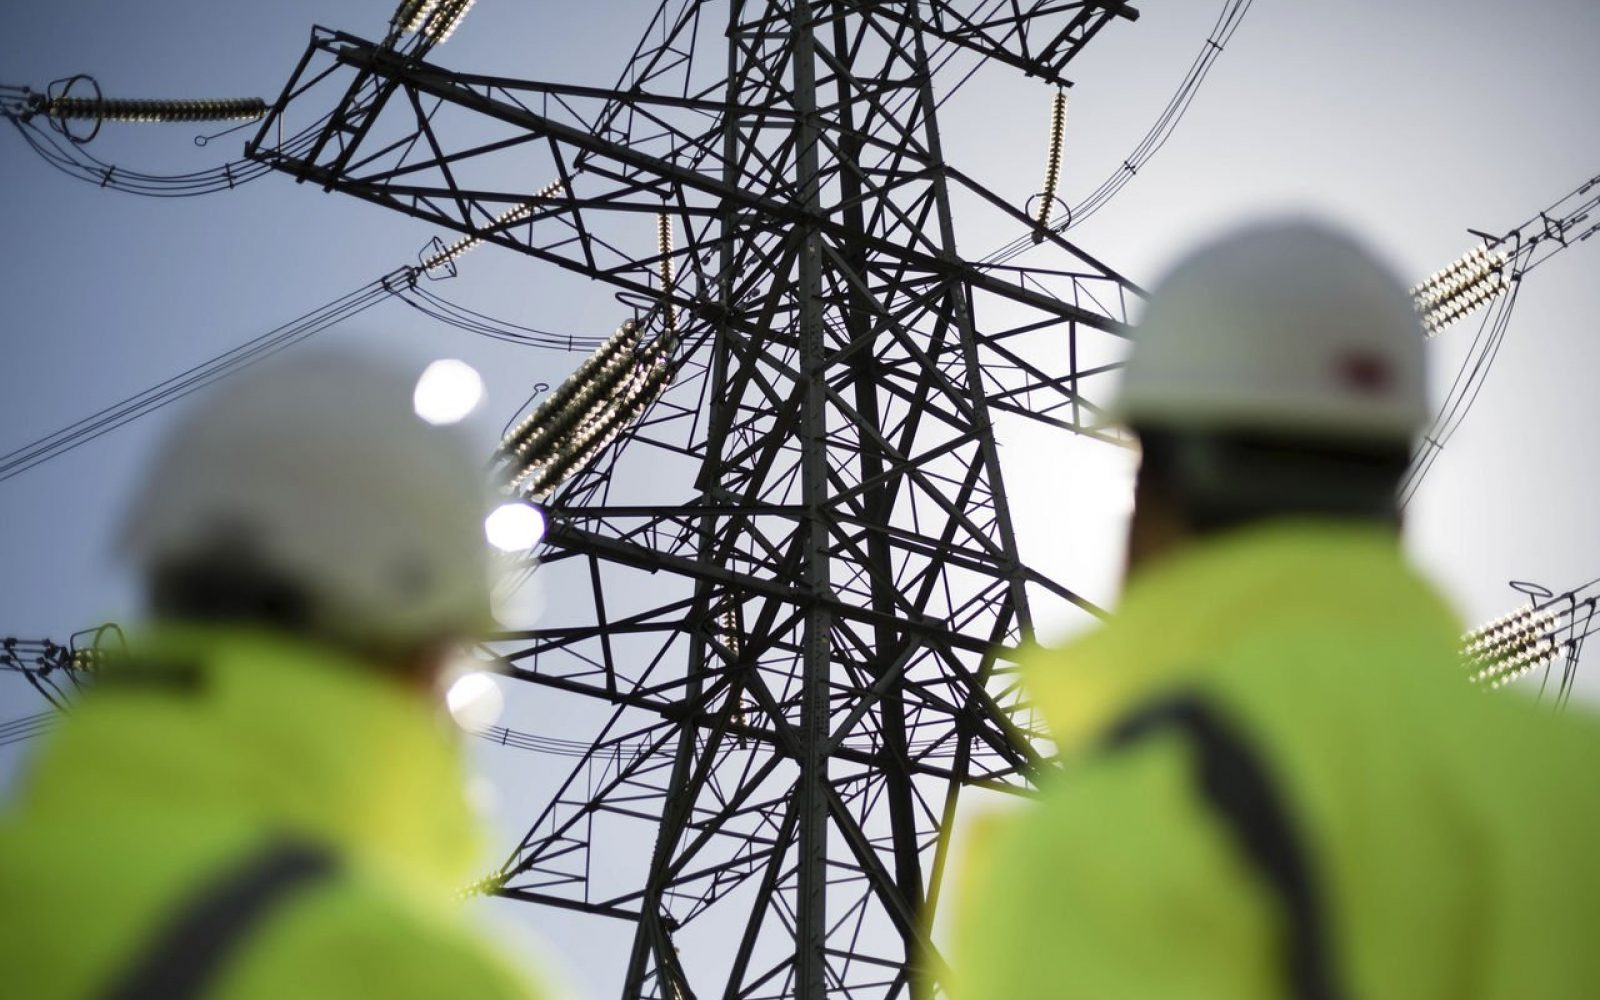 National Grid is acquiring WPD as part its wider strategy to focus on transmission and distribution. Image: National Grid.